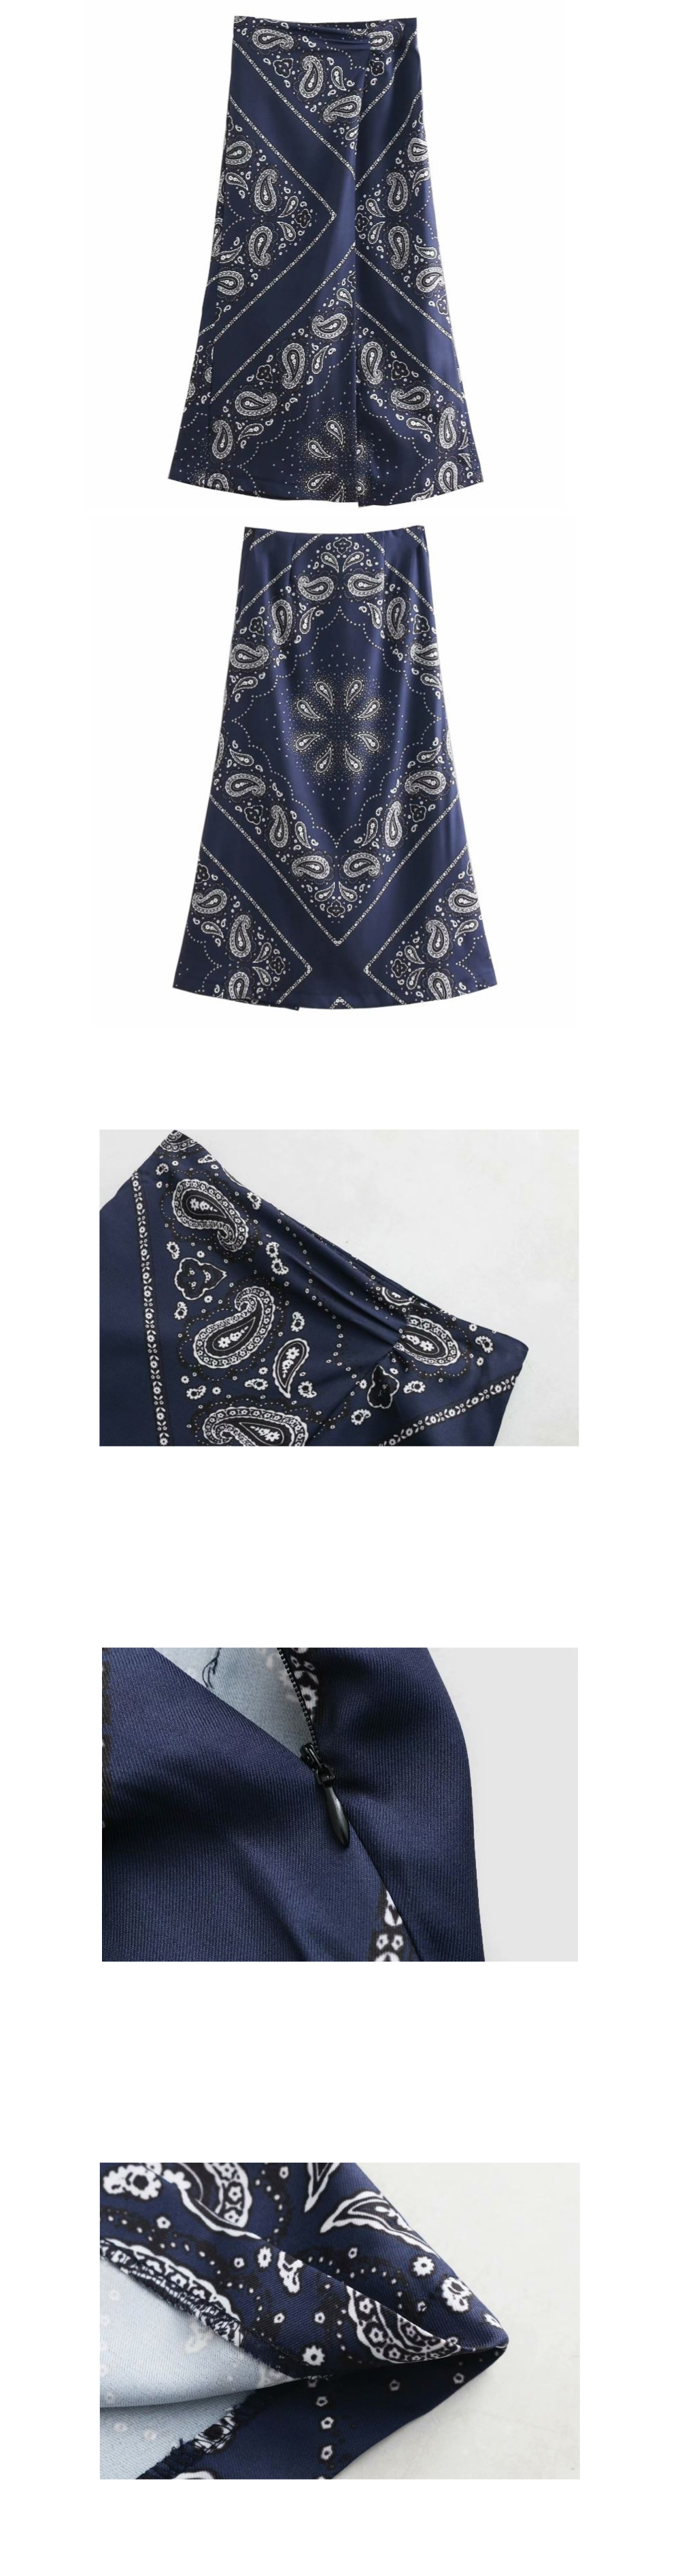 Navy paisley top long skirt _sk03058